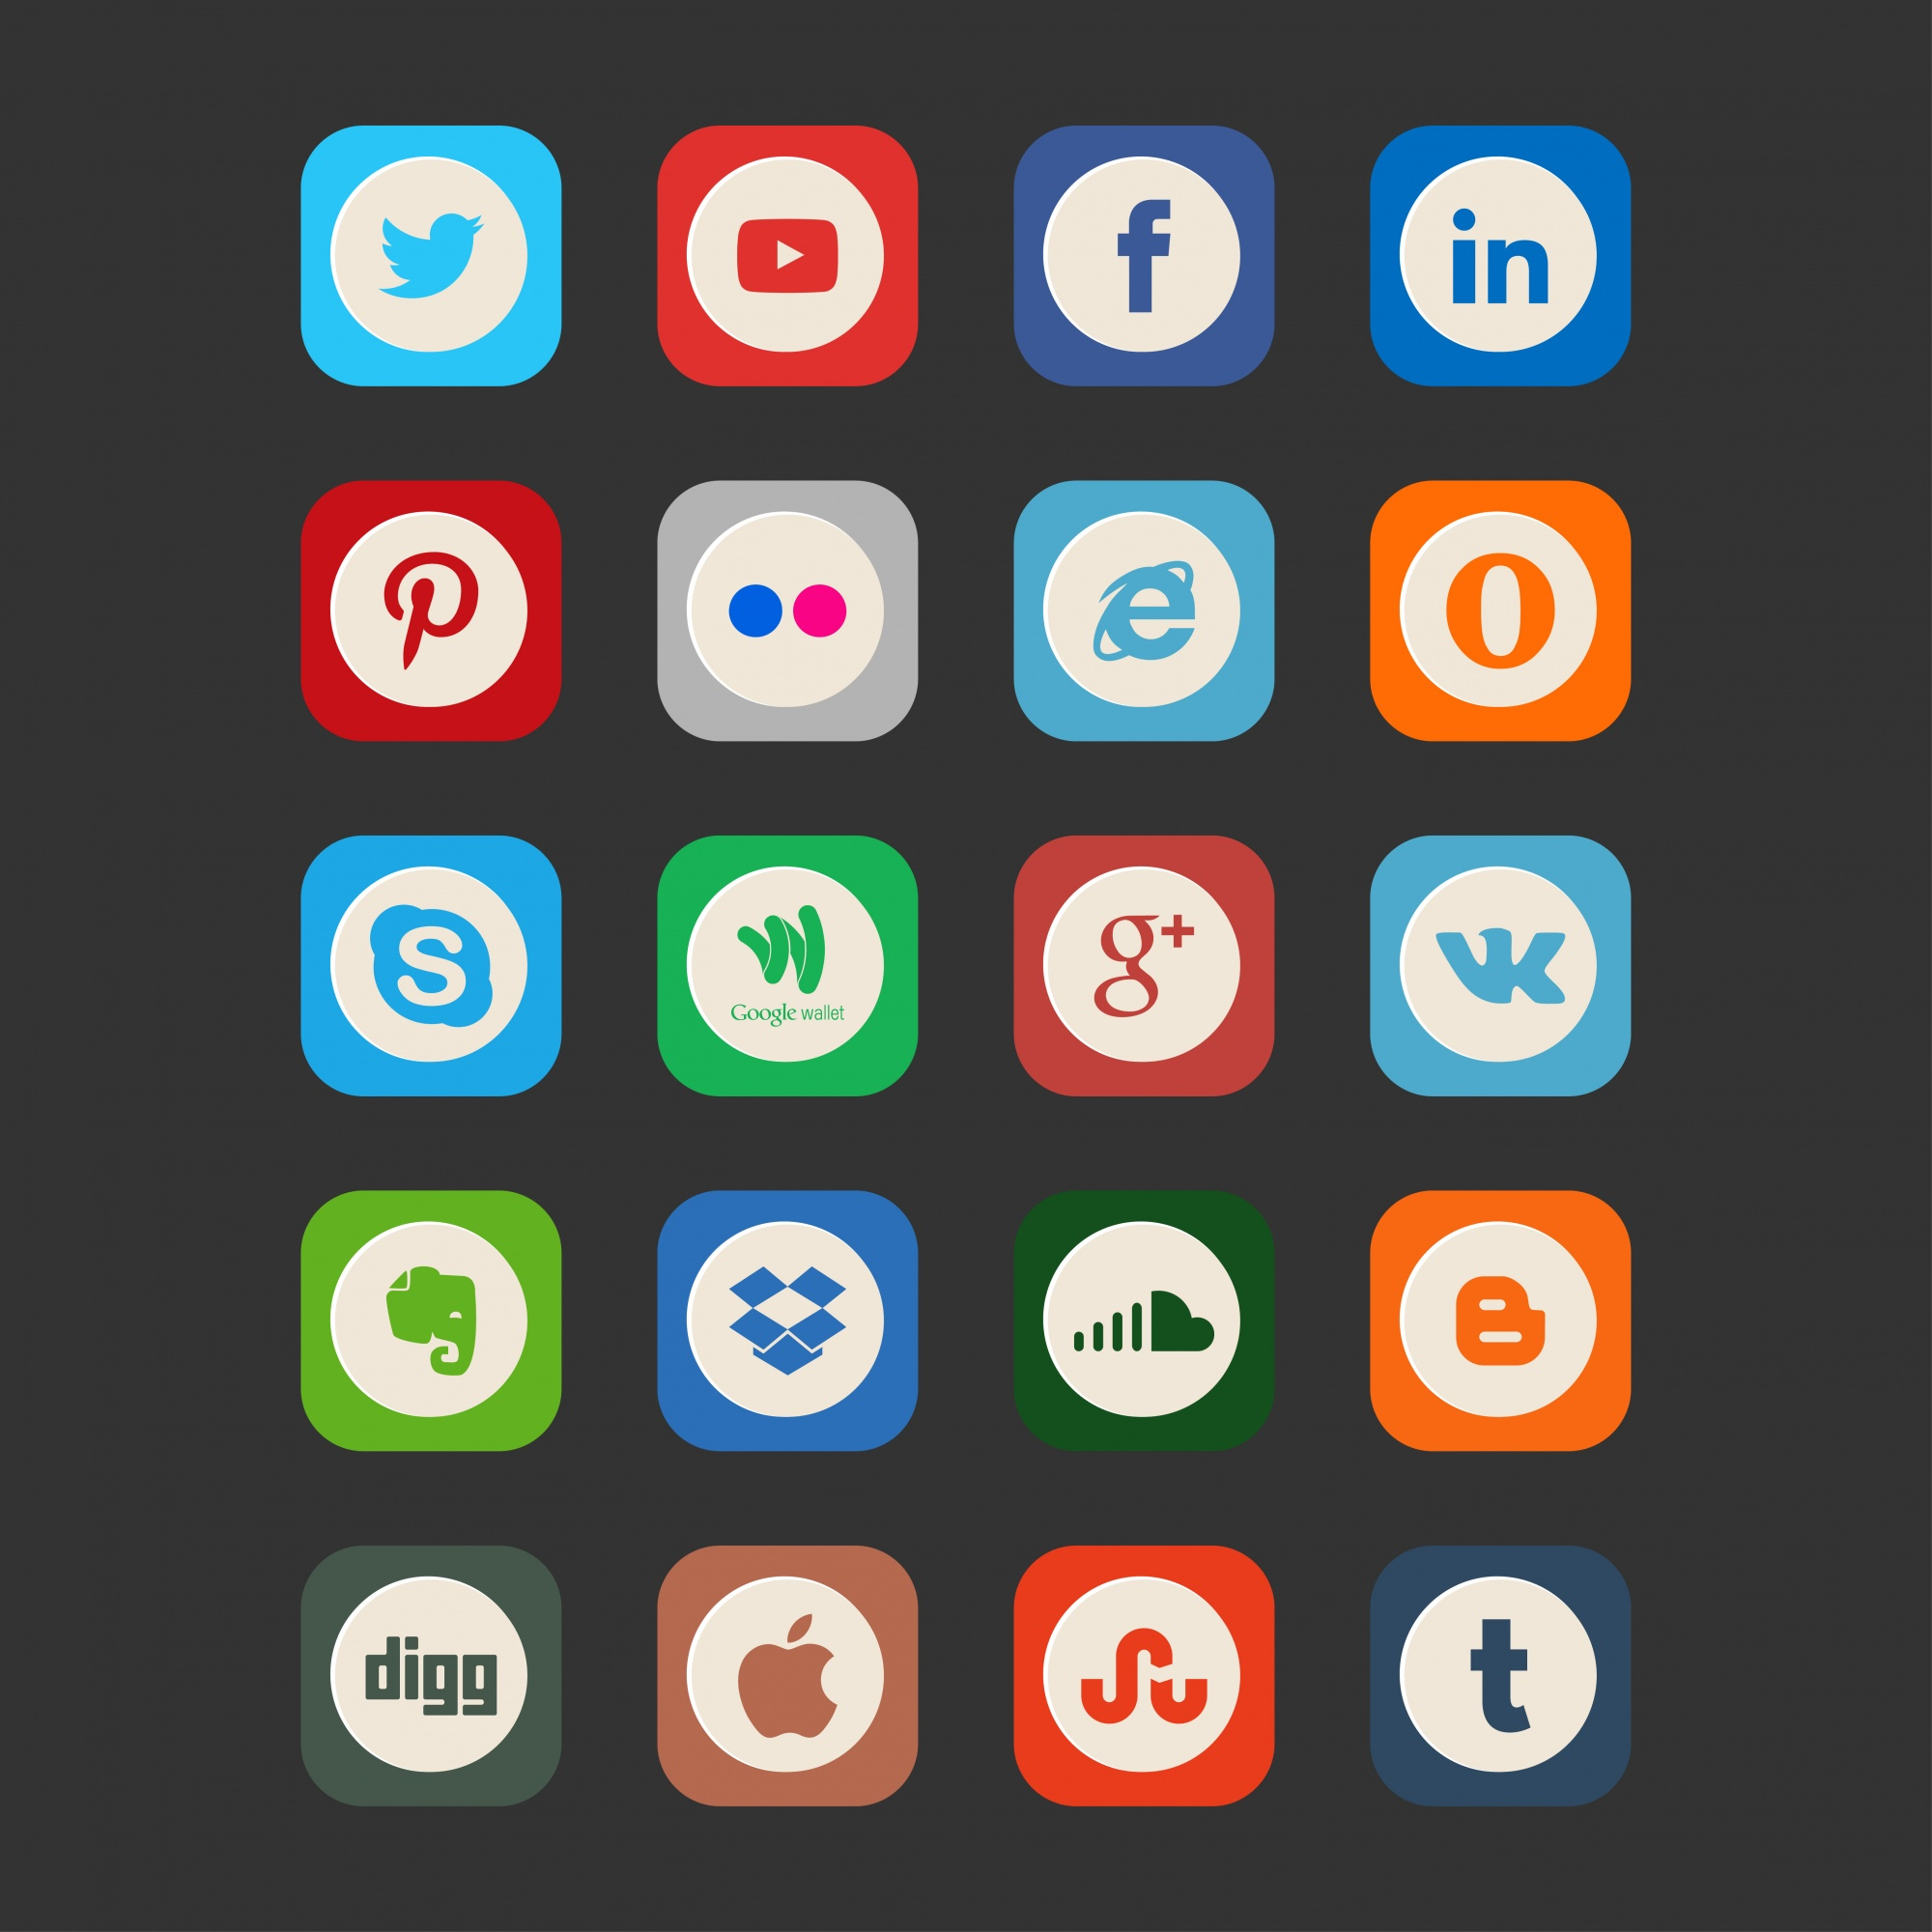 Vintage style social media icons